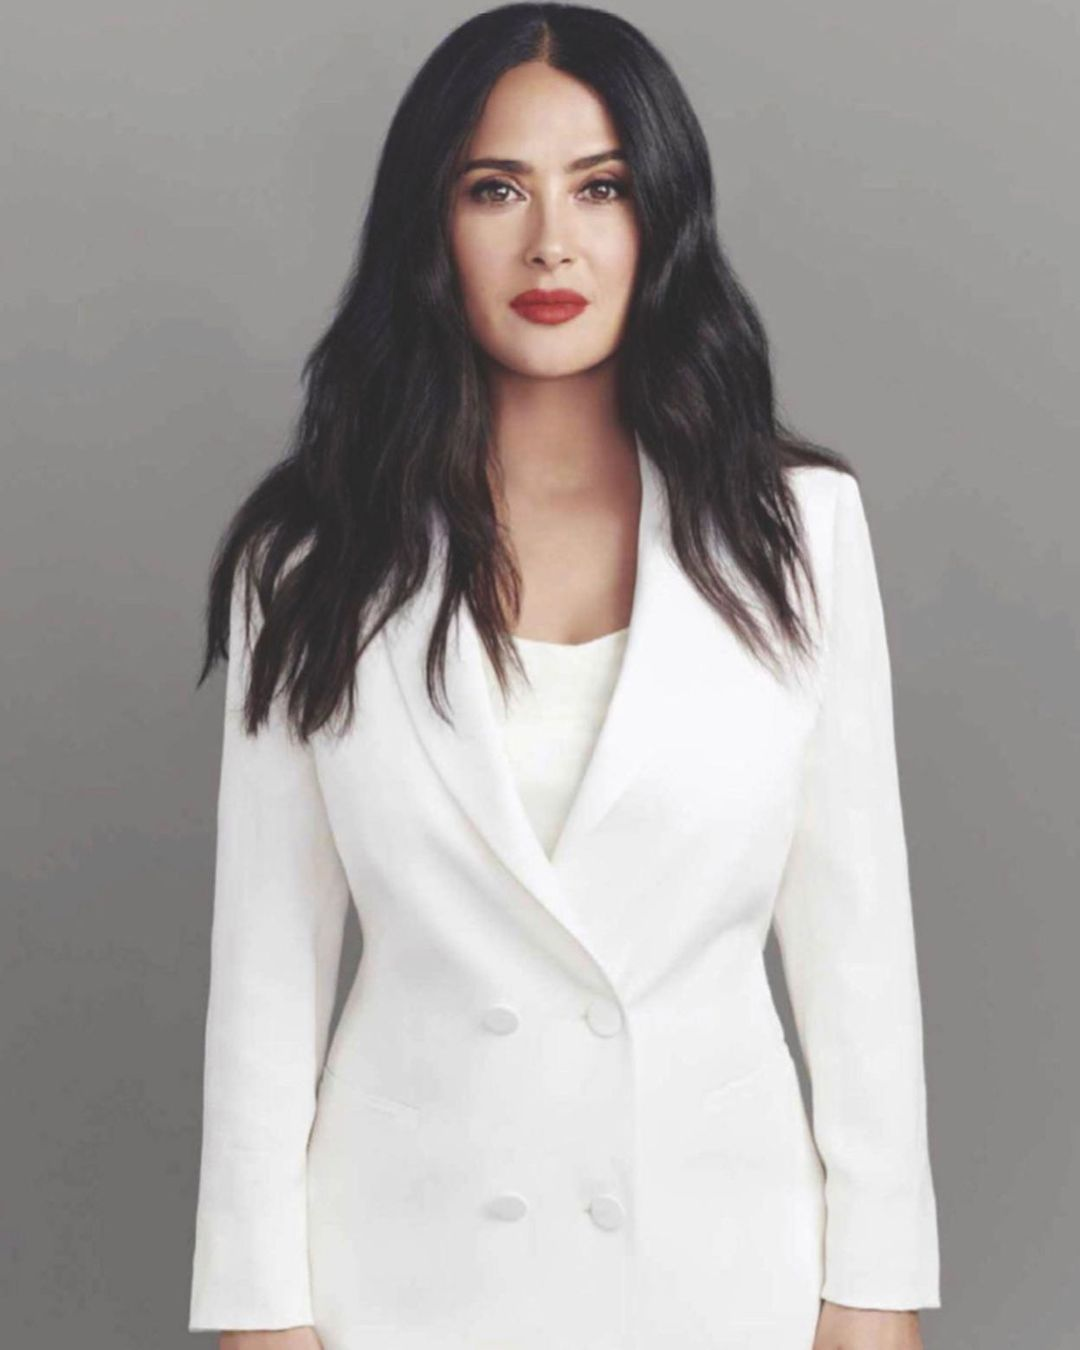 Images of Salma Hayek | Picture 4